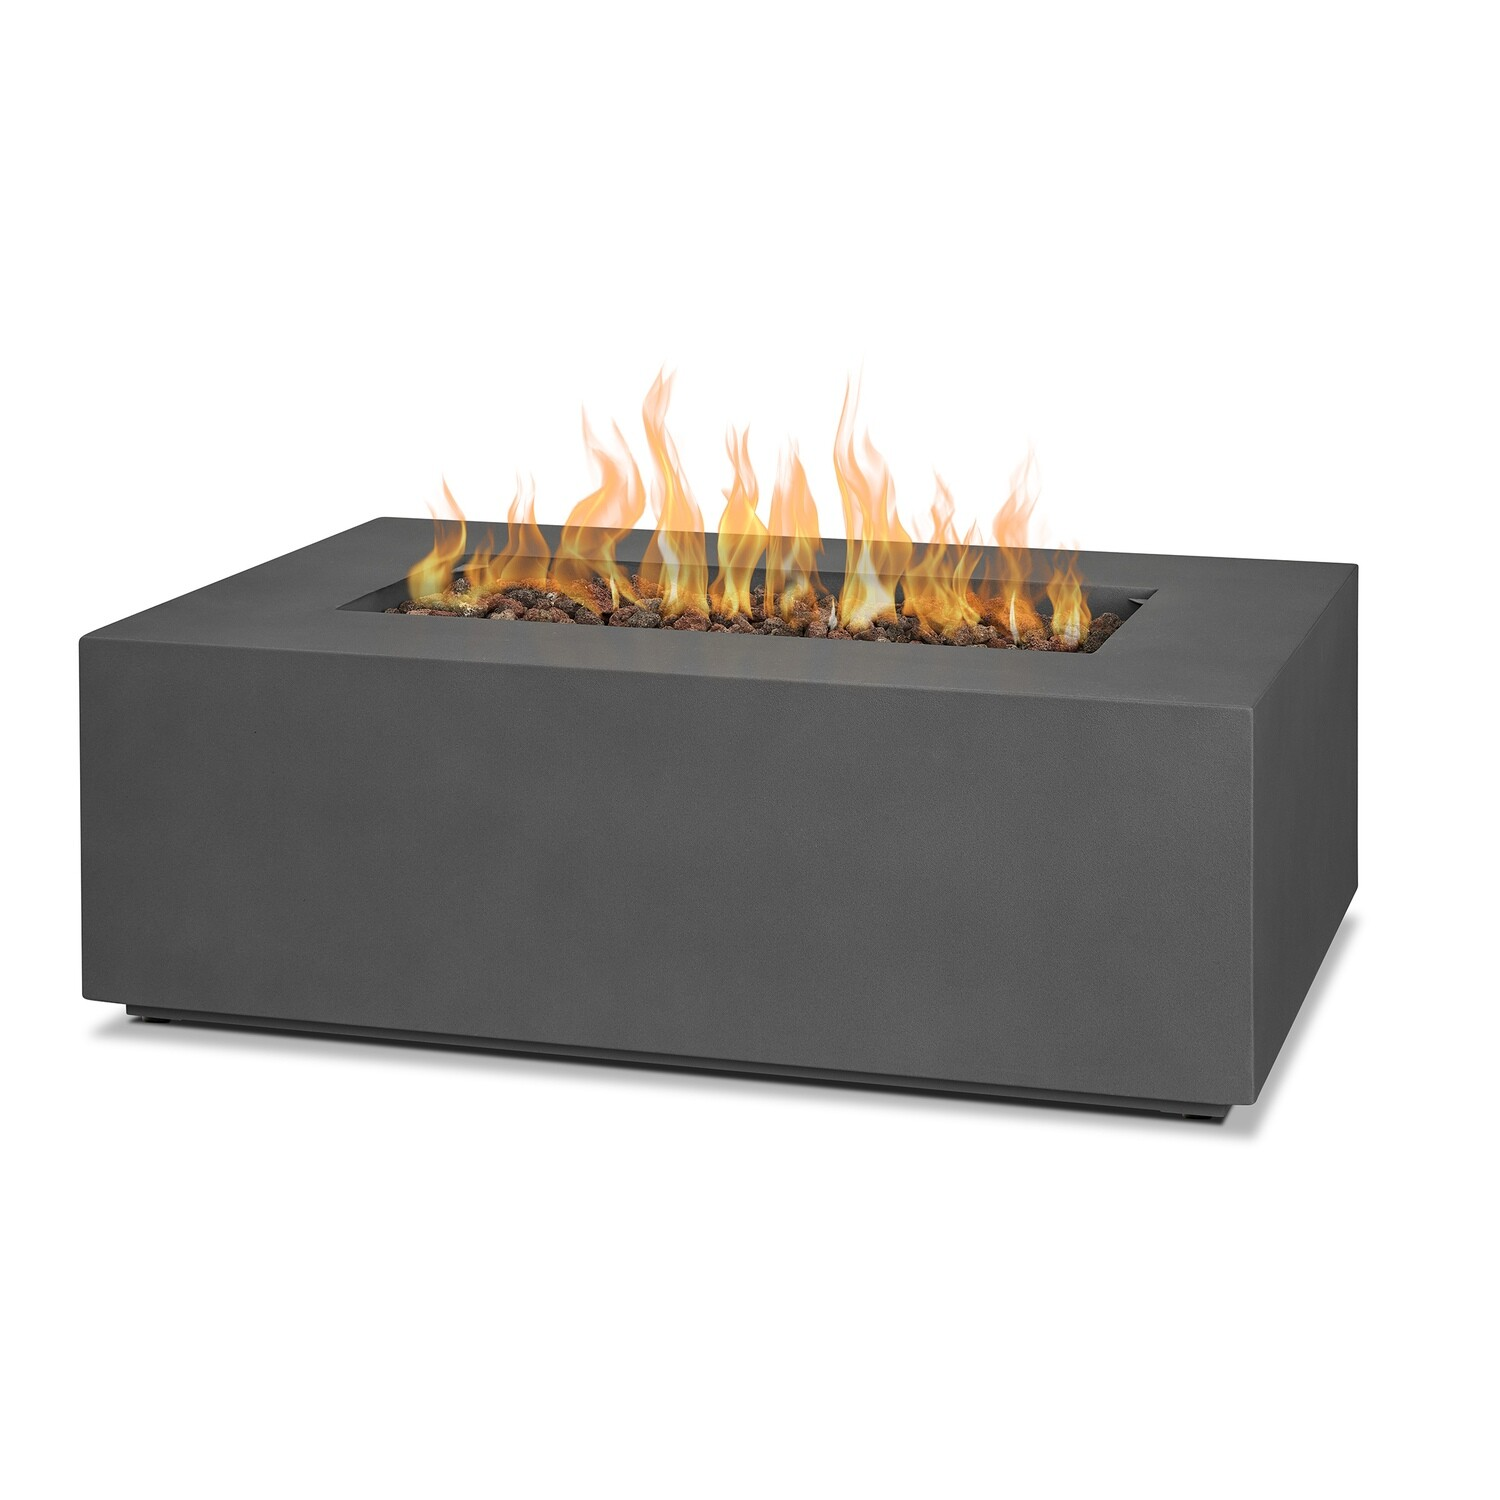 "Athens 42"" Rectangle Fire Pit Table 